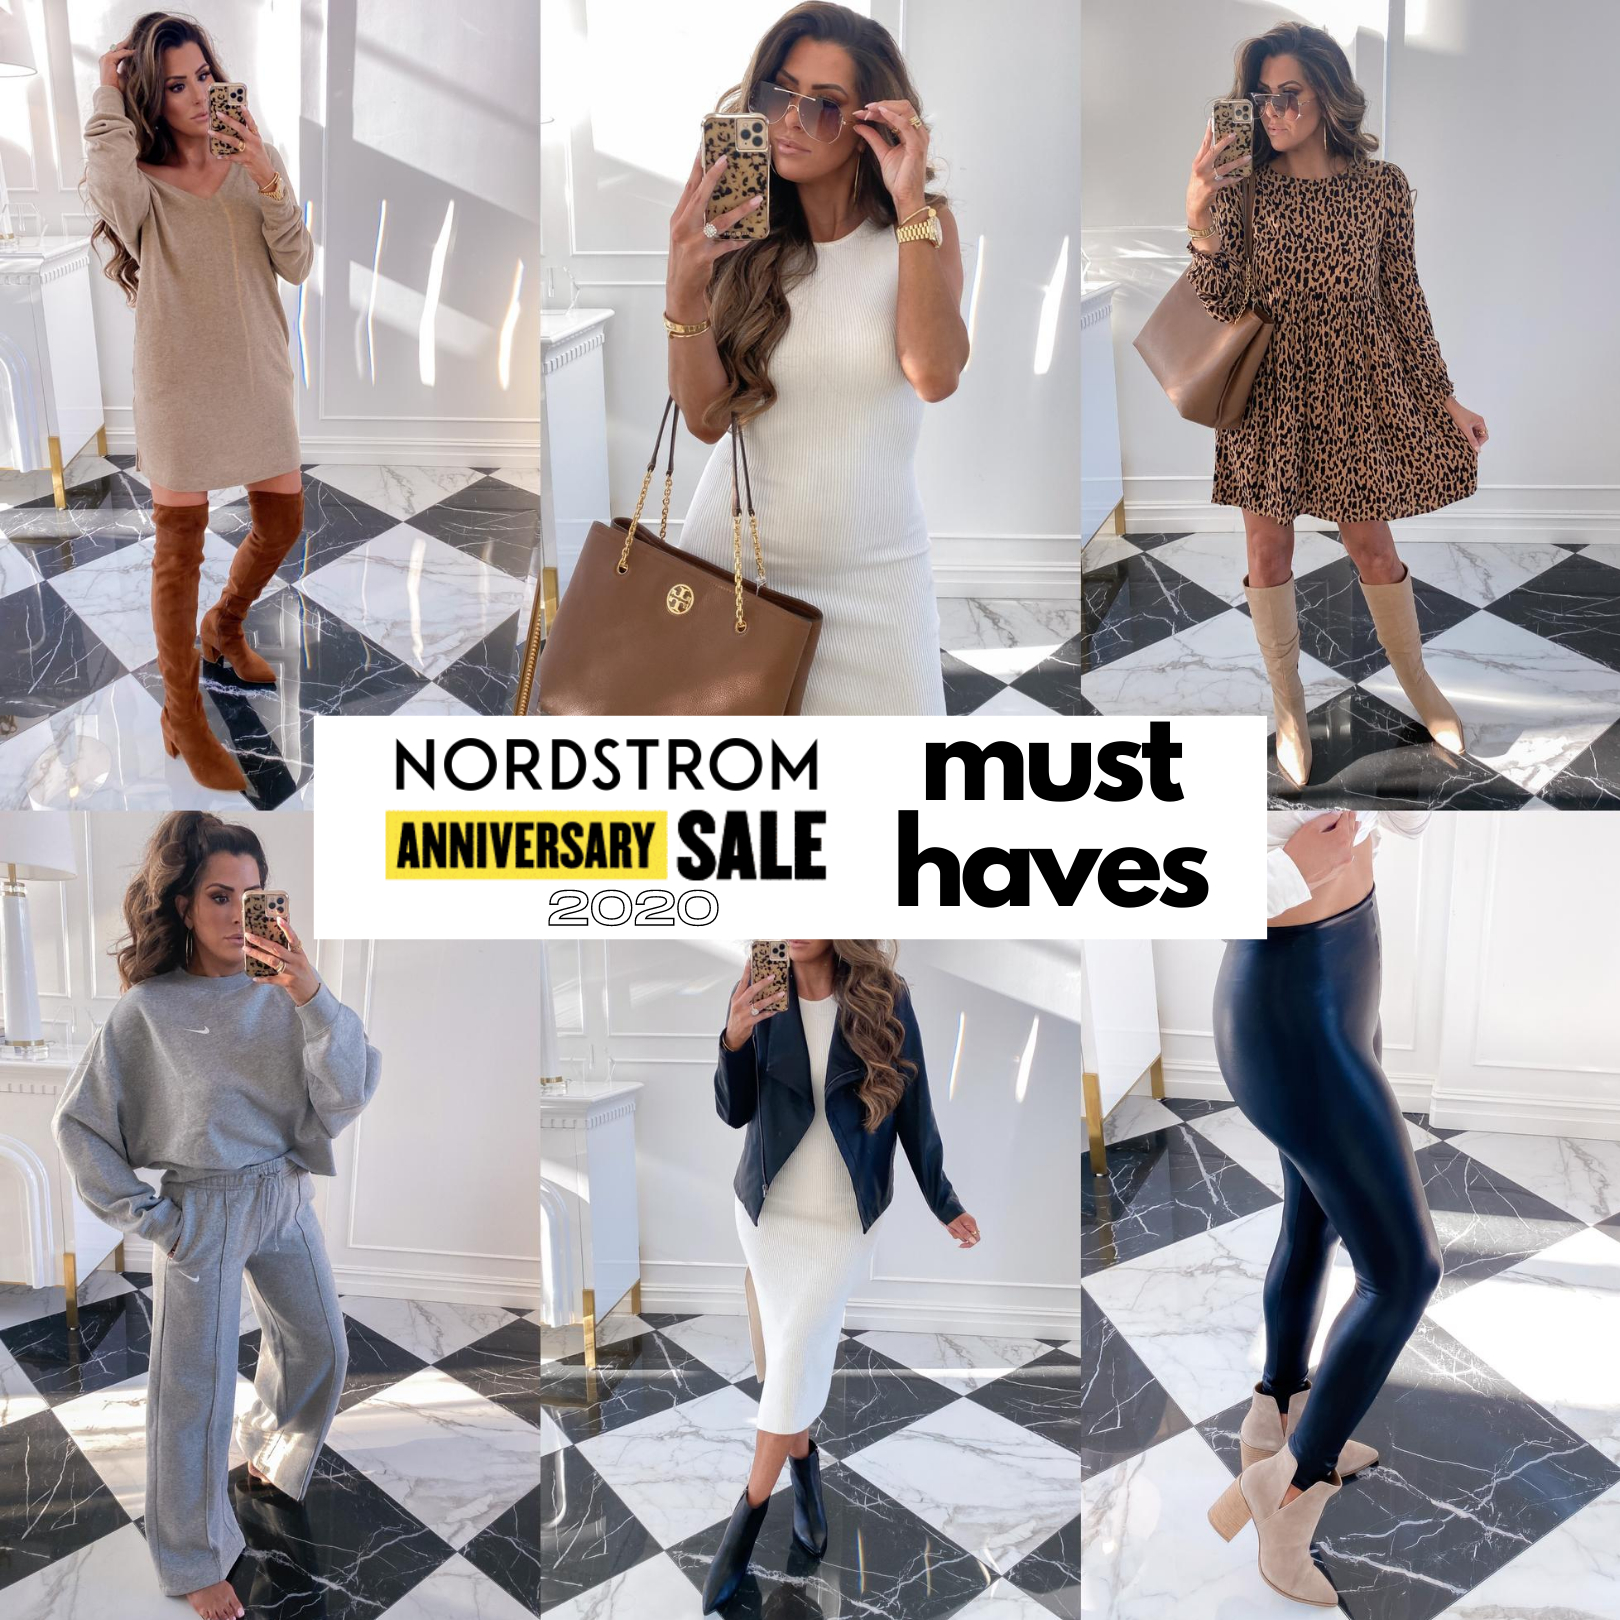 Nordstrom Anniversary sale 2020 try on, NSALE 2020 top picks, Nordstrom anniversary sale shoes, emily gemma | Nordstrom Anniversary Sale by popular US fashion blog, The Sweetest Thing: collage image of Emily Gemma wearing various Nordstrom clothing items and accessories.